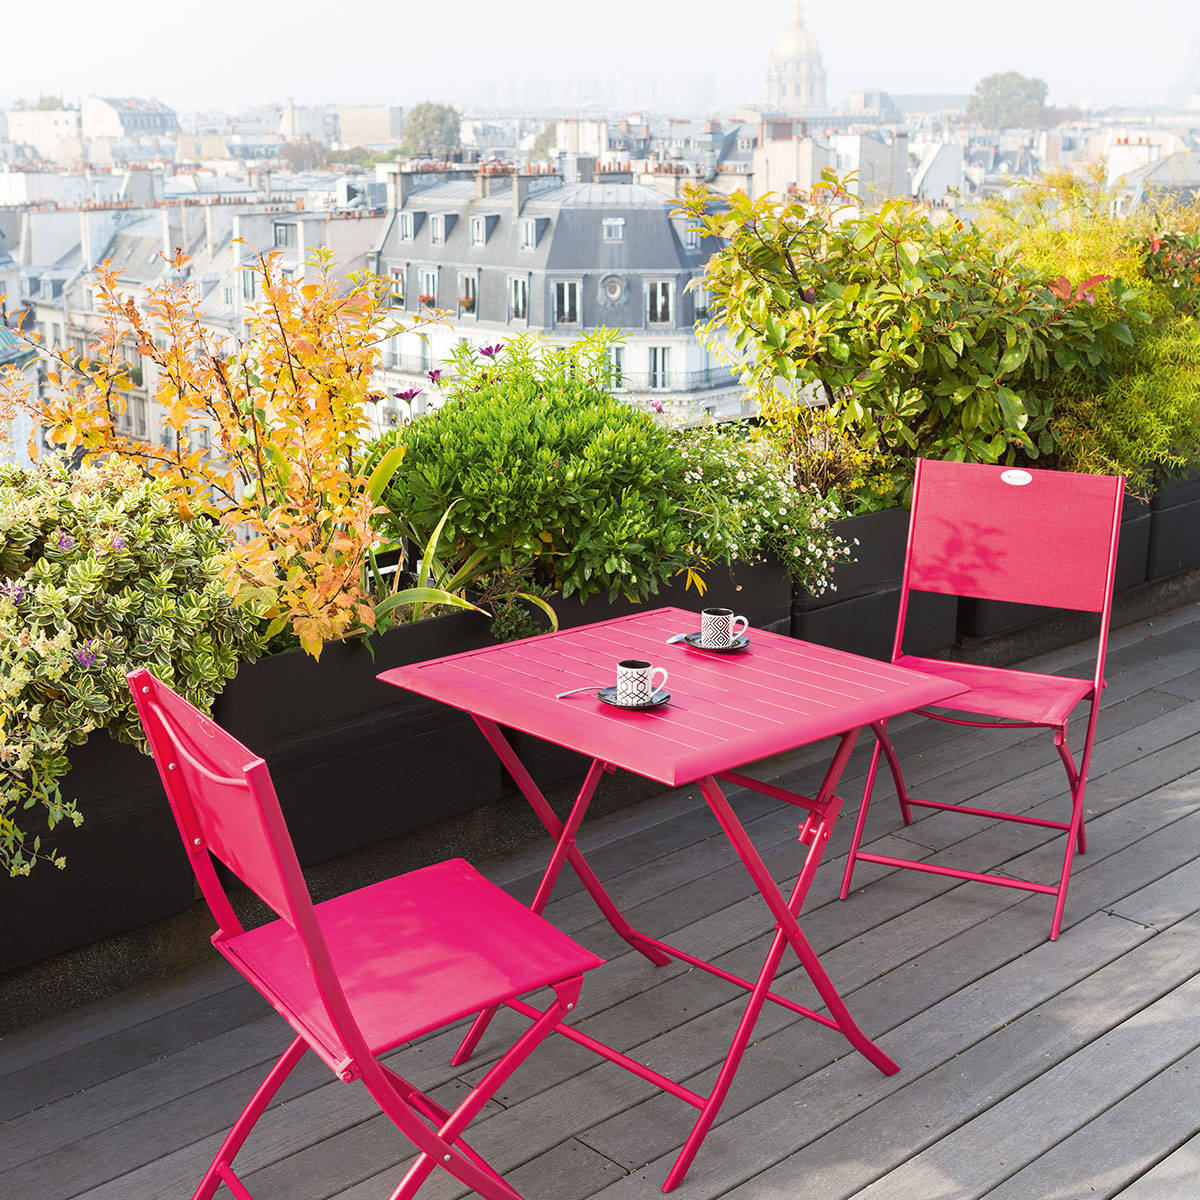 Table de balcon pliante carr e azua cerise hesp ride 2 places - Le bon coin table et chaise de jardin ...